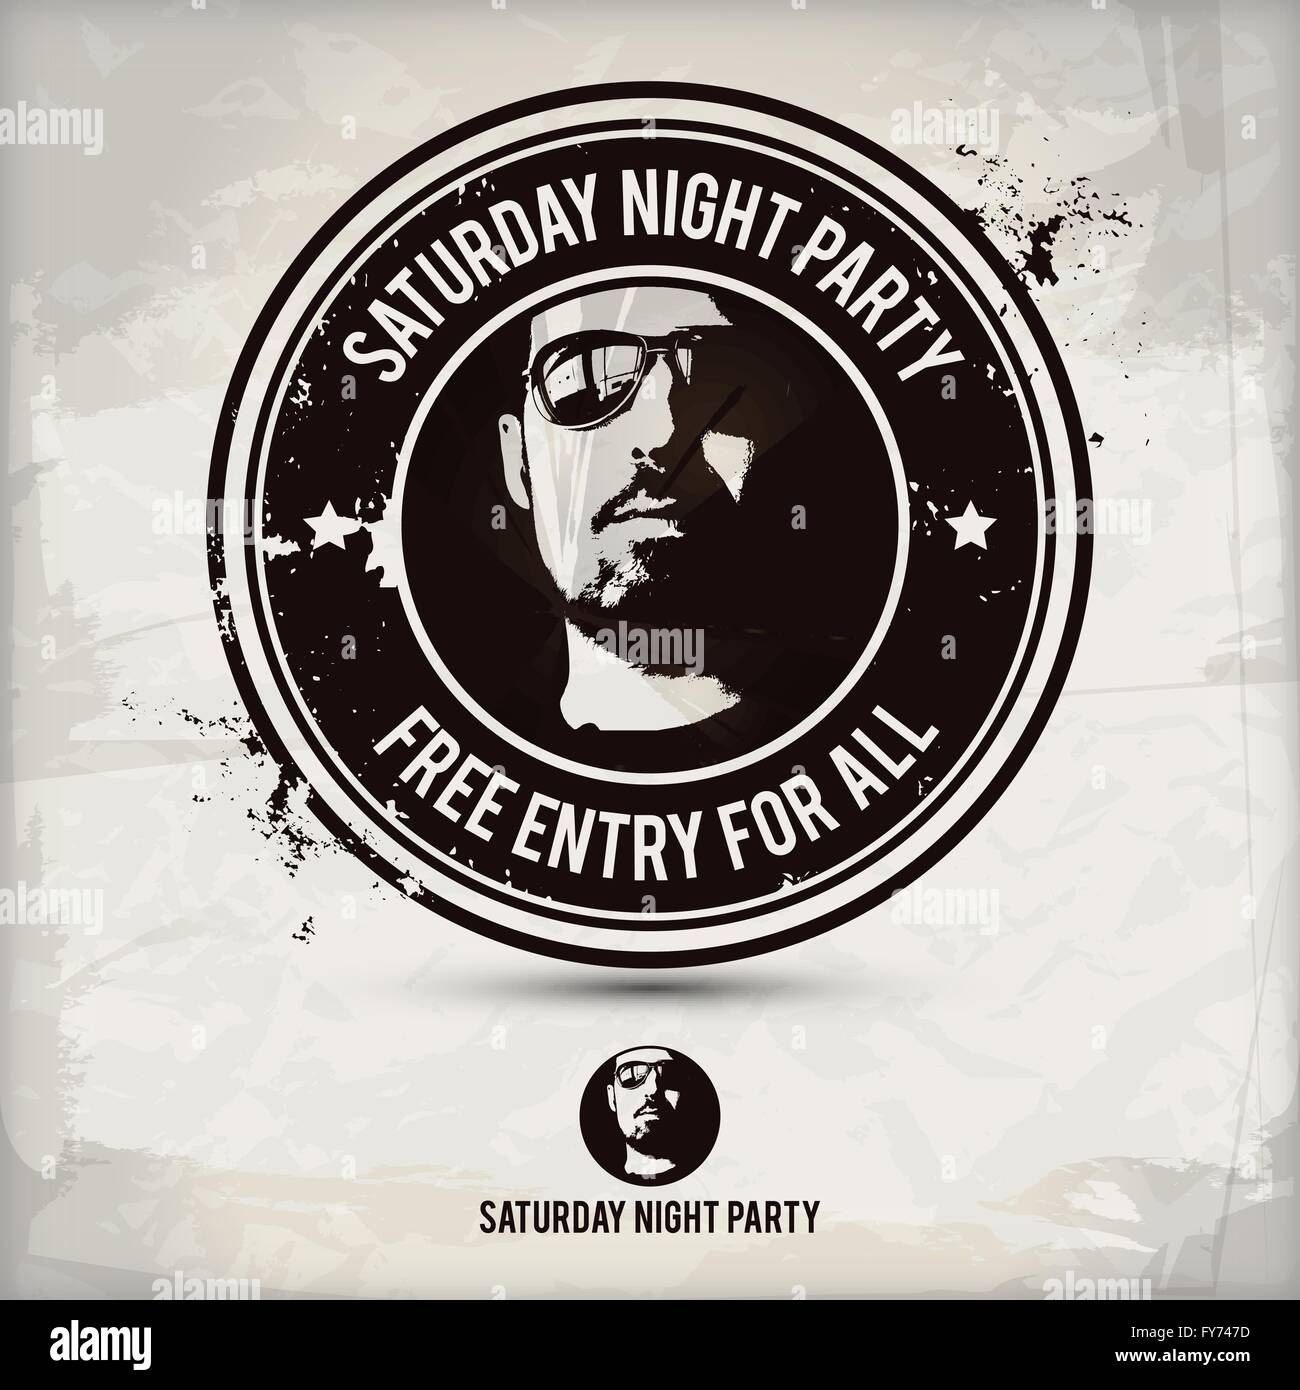 saturday night party stamp on textured background, which is made from several transparent layers for a worn, rubbed - Stock Vector